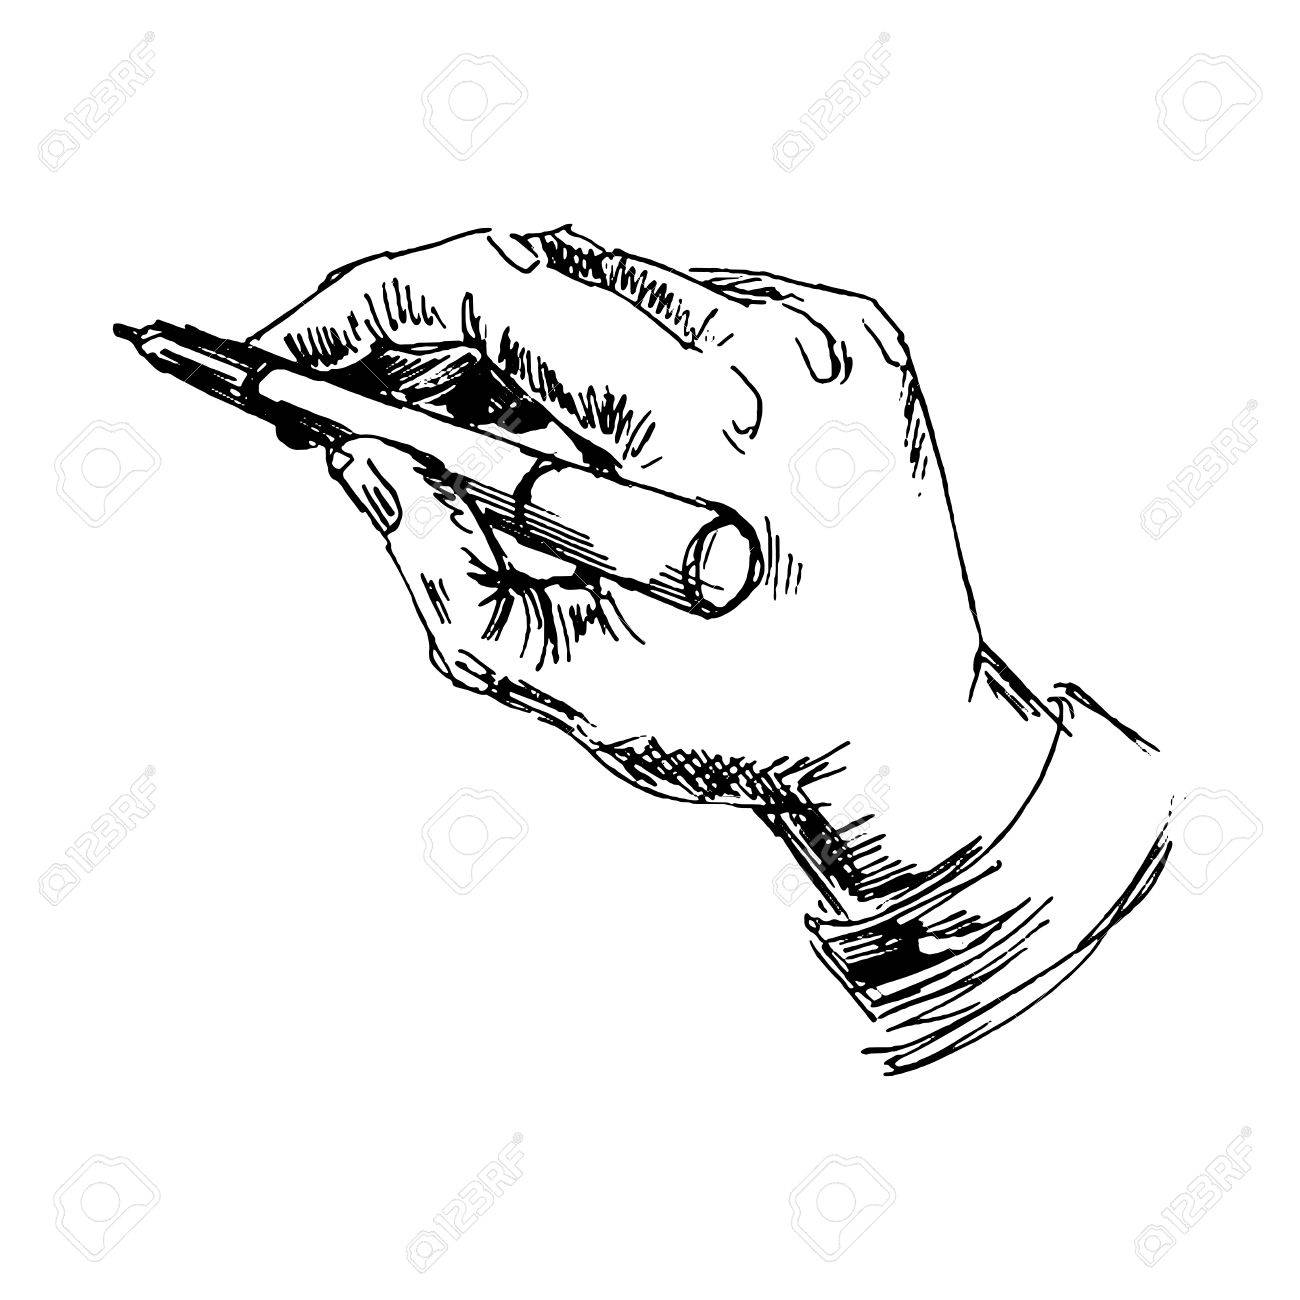 Hand with pencil sketch converted to vectors stock vector 37928710